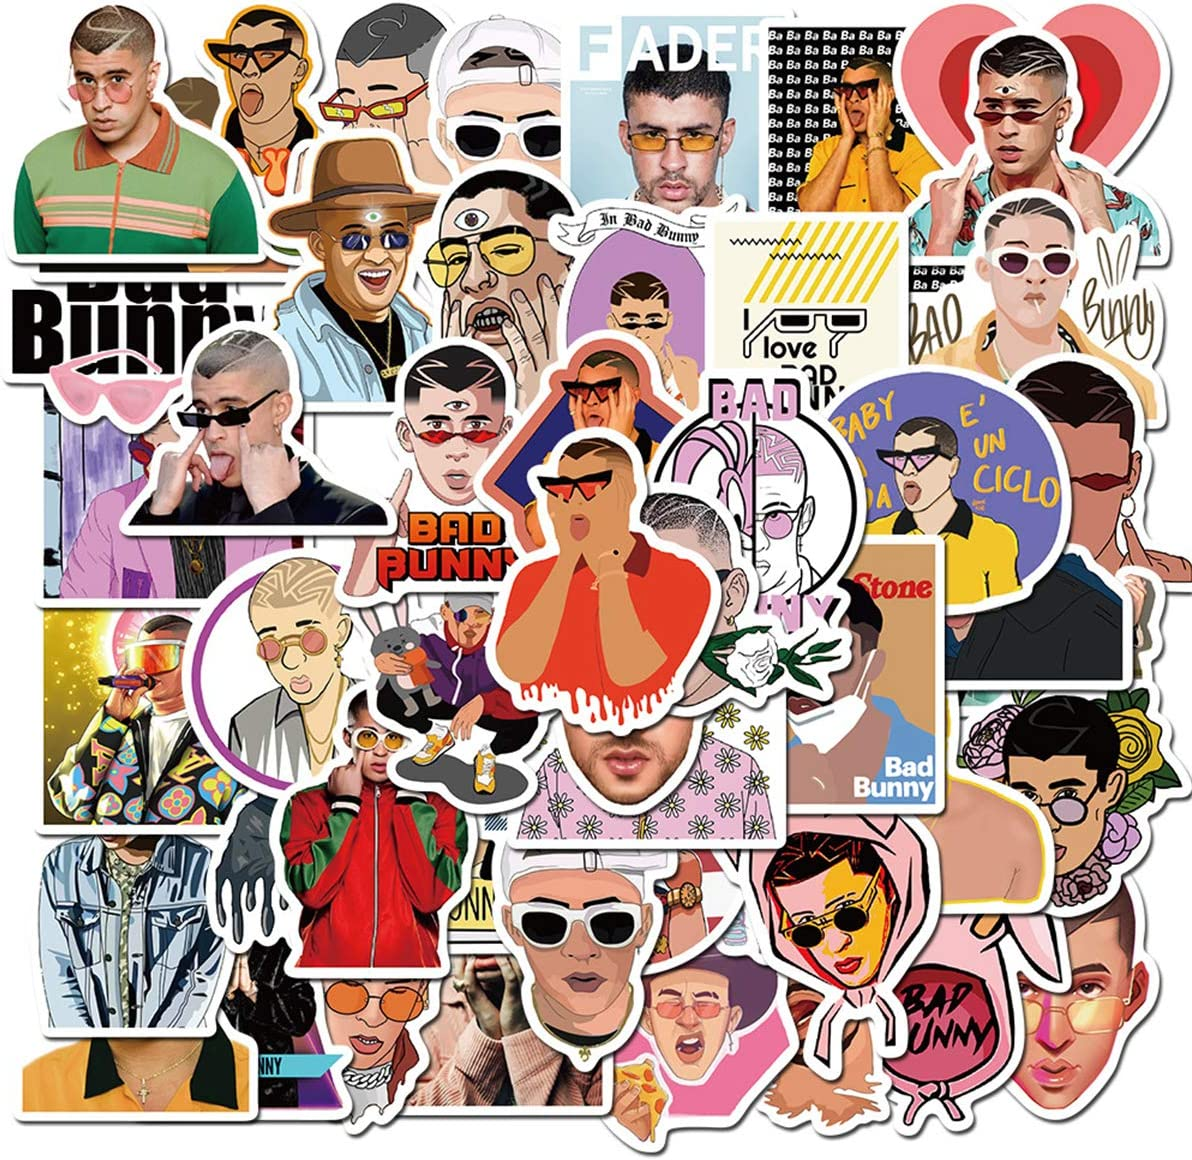 Singer Bad Bunny Laptops Stickers 50pcs Vinyl Aesthetic Waterproof Stickers for Hydro Flasks Water Bottle Stickers Laptops Motorcycle Bicycle Skateboard Luggage Decal Graffiti Patches (Bad Bunny)